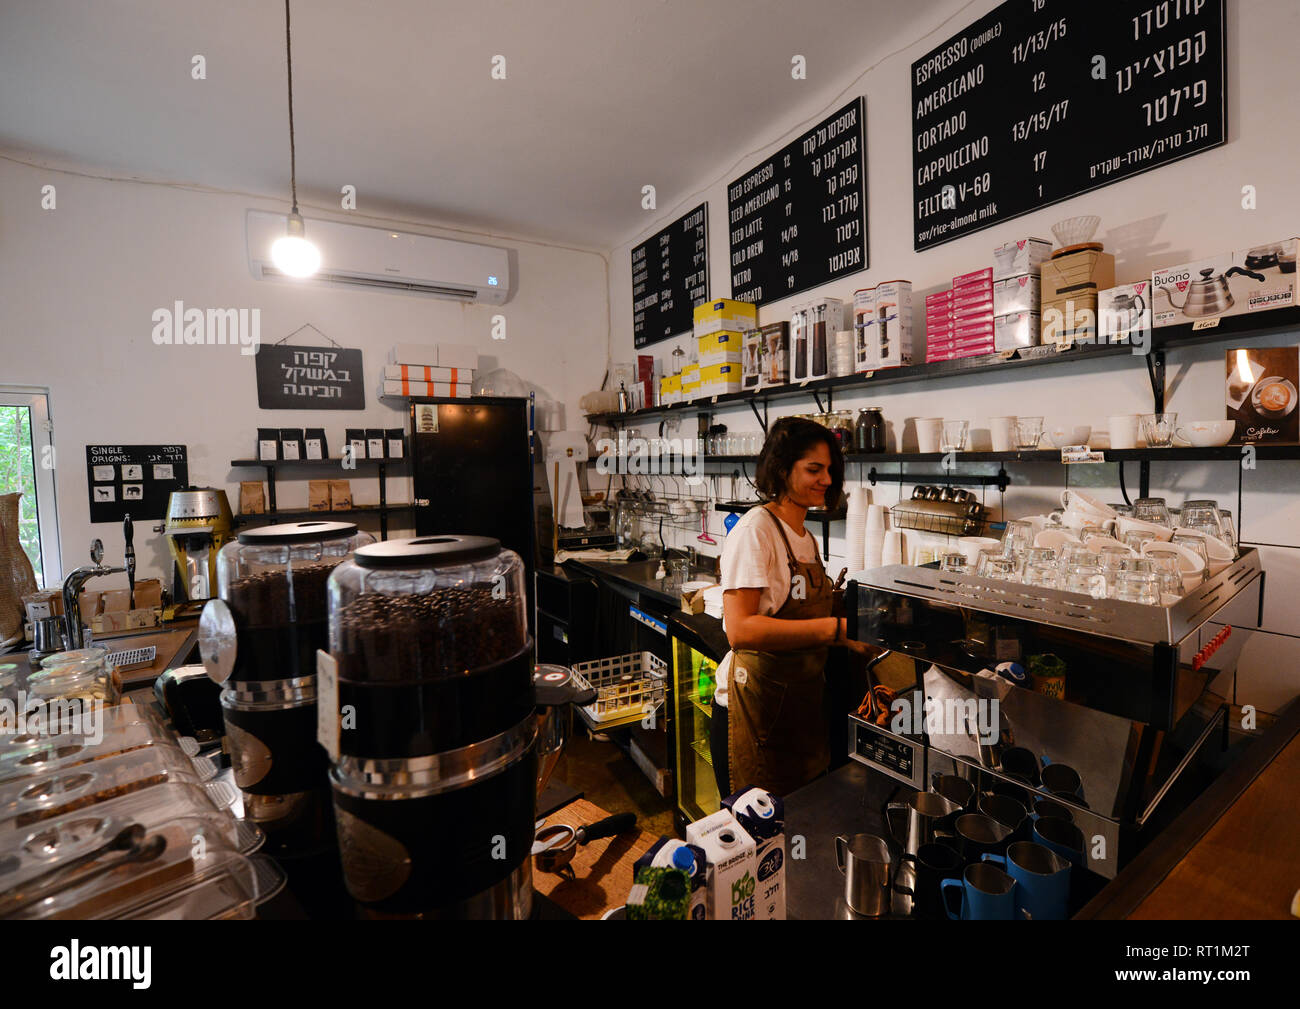 Cafelix Artisan coffee shop in Tel-Aviv. - Stock Image